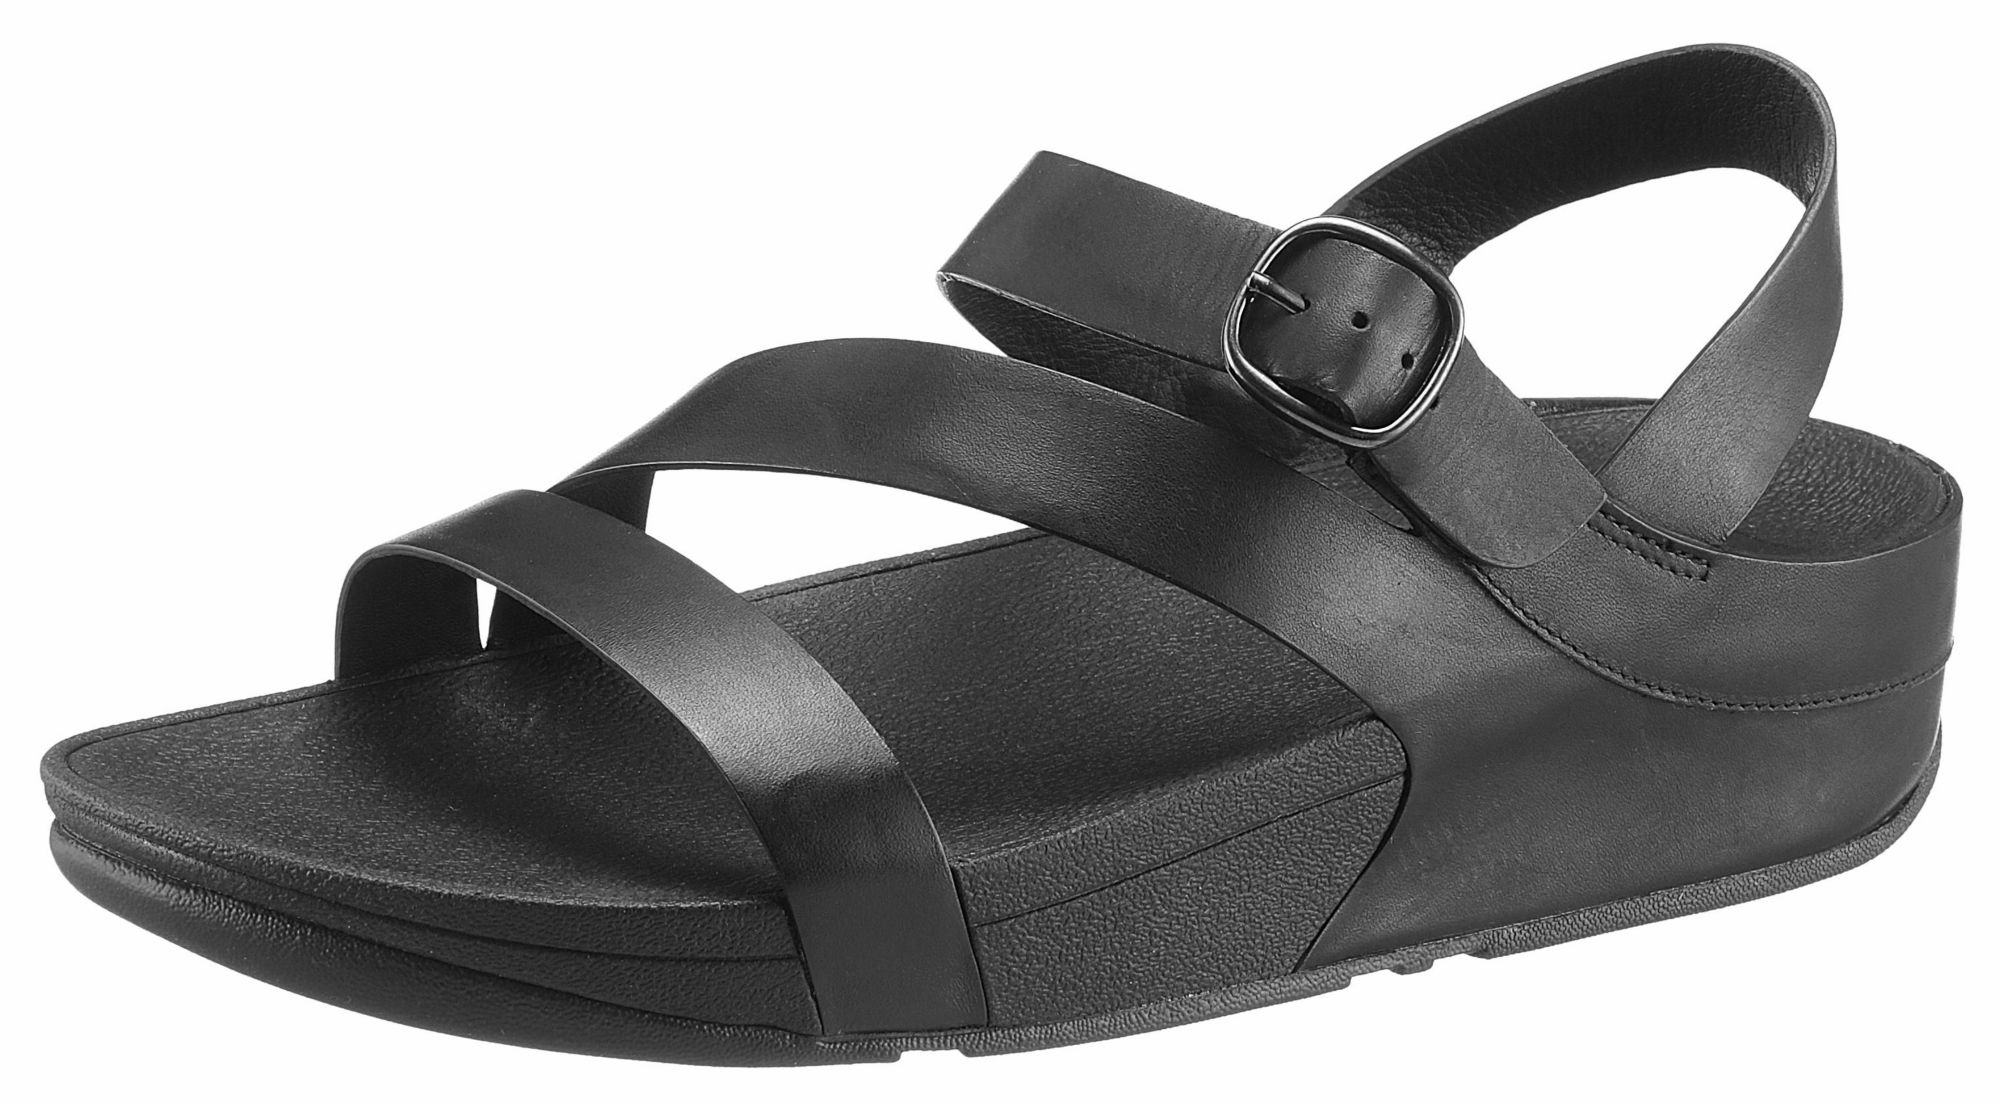 FITFLOP FitFlop Keilsandalette »The Skinny Z-Cross Sandals«